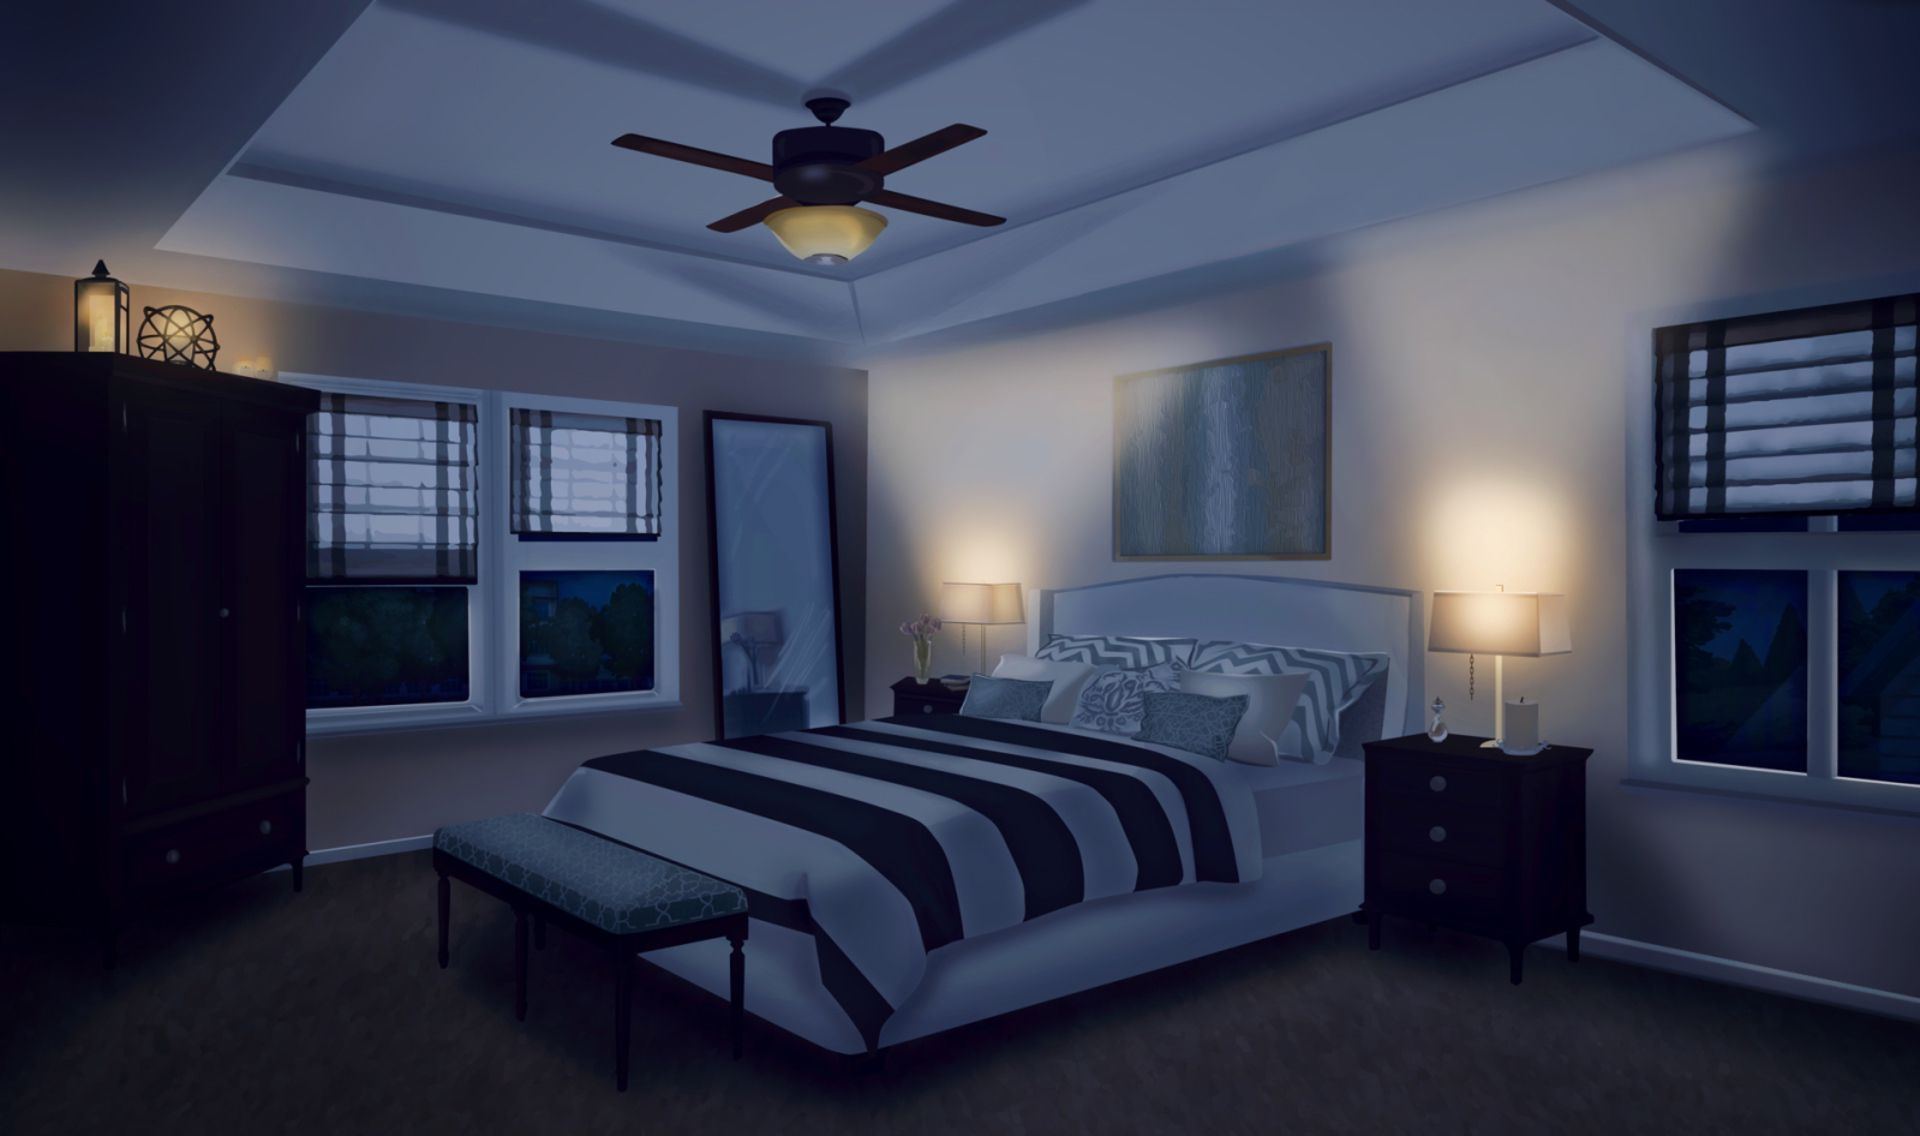 The Singing Omega Anime Backgrounds Wallpapers Anime Scenery Bedroom Designs Images Bedroom background for gacha